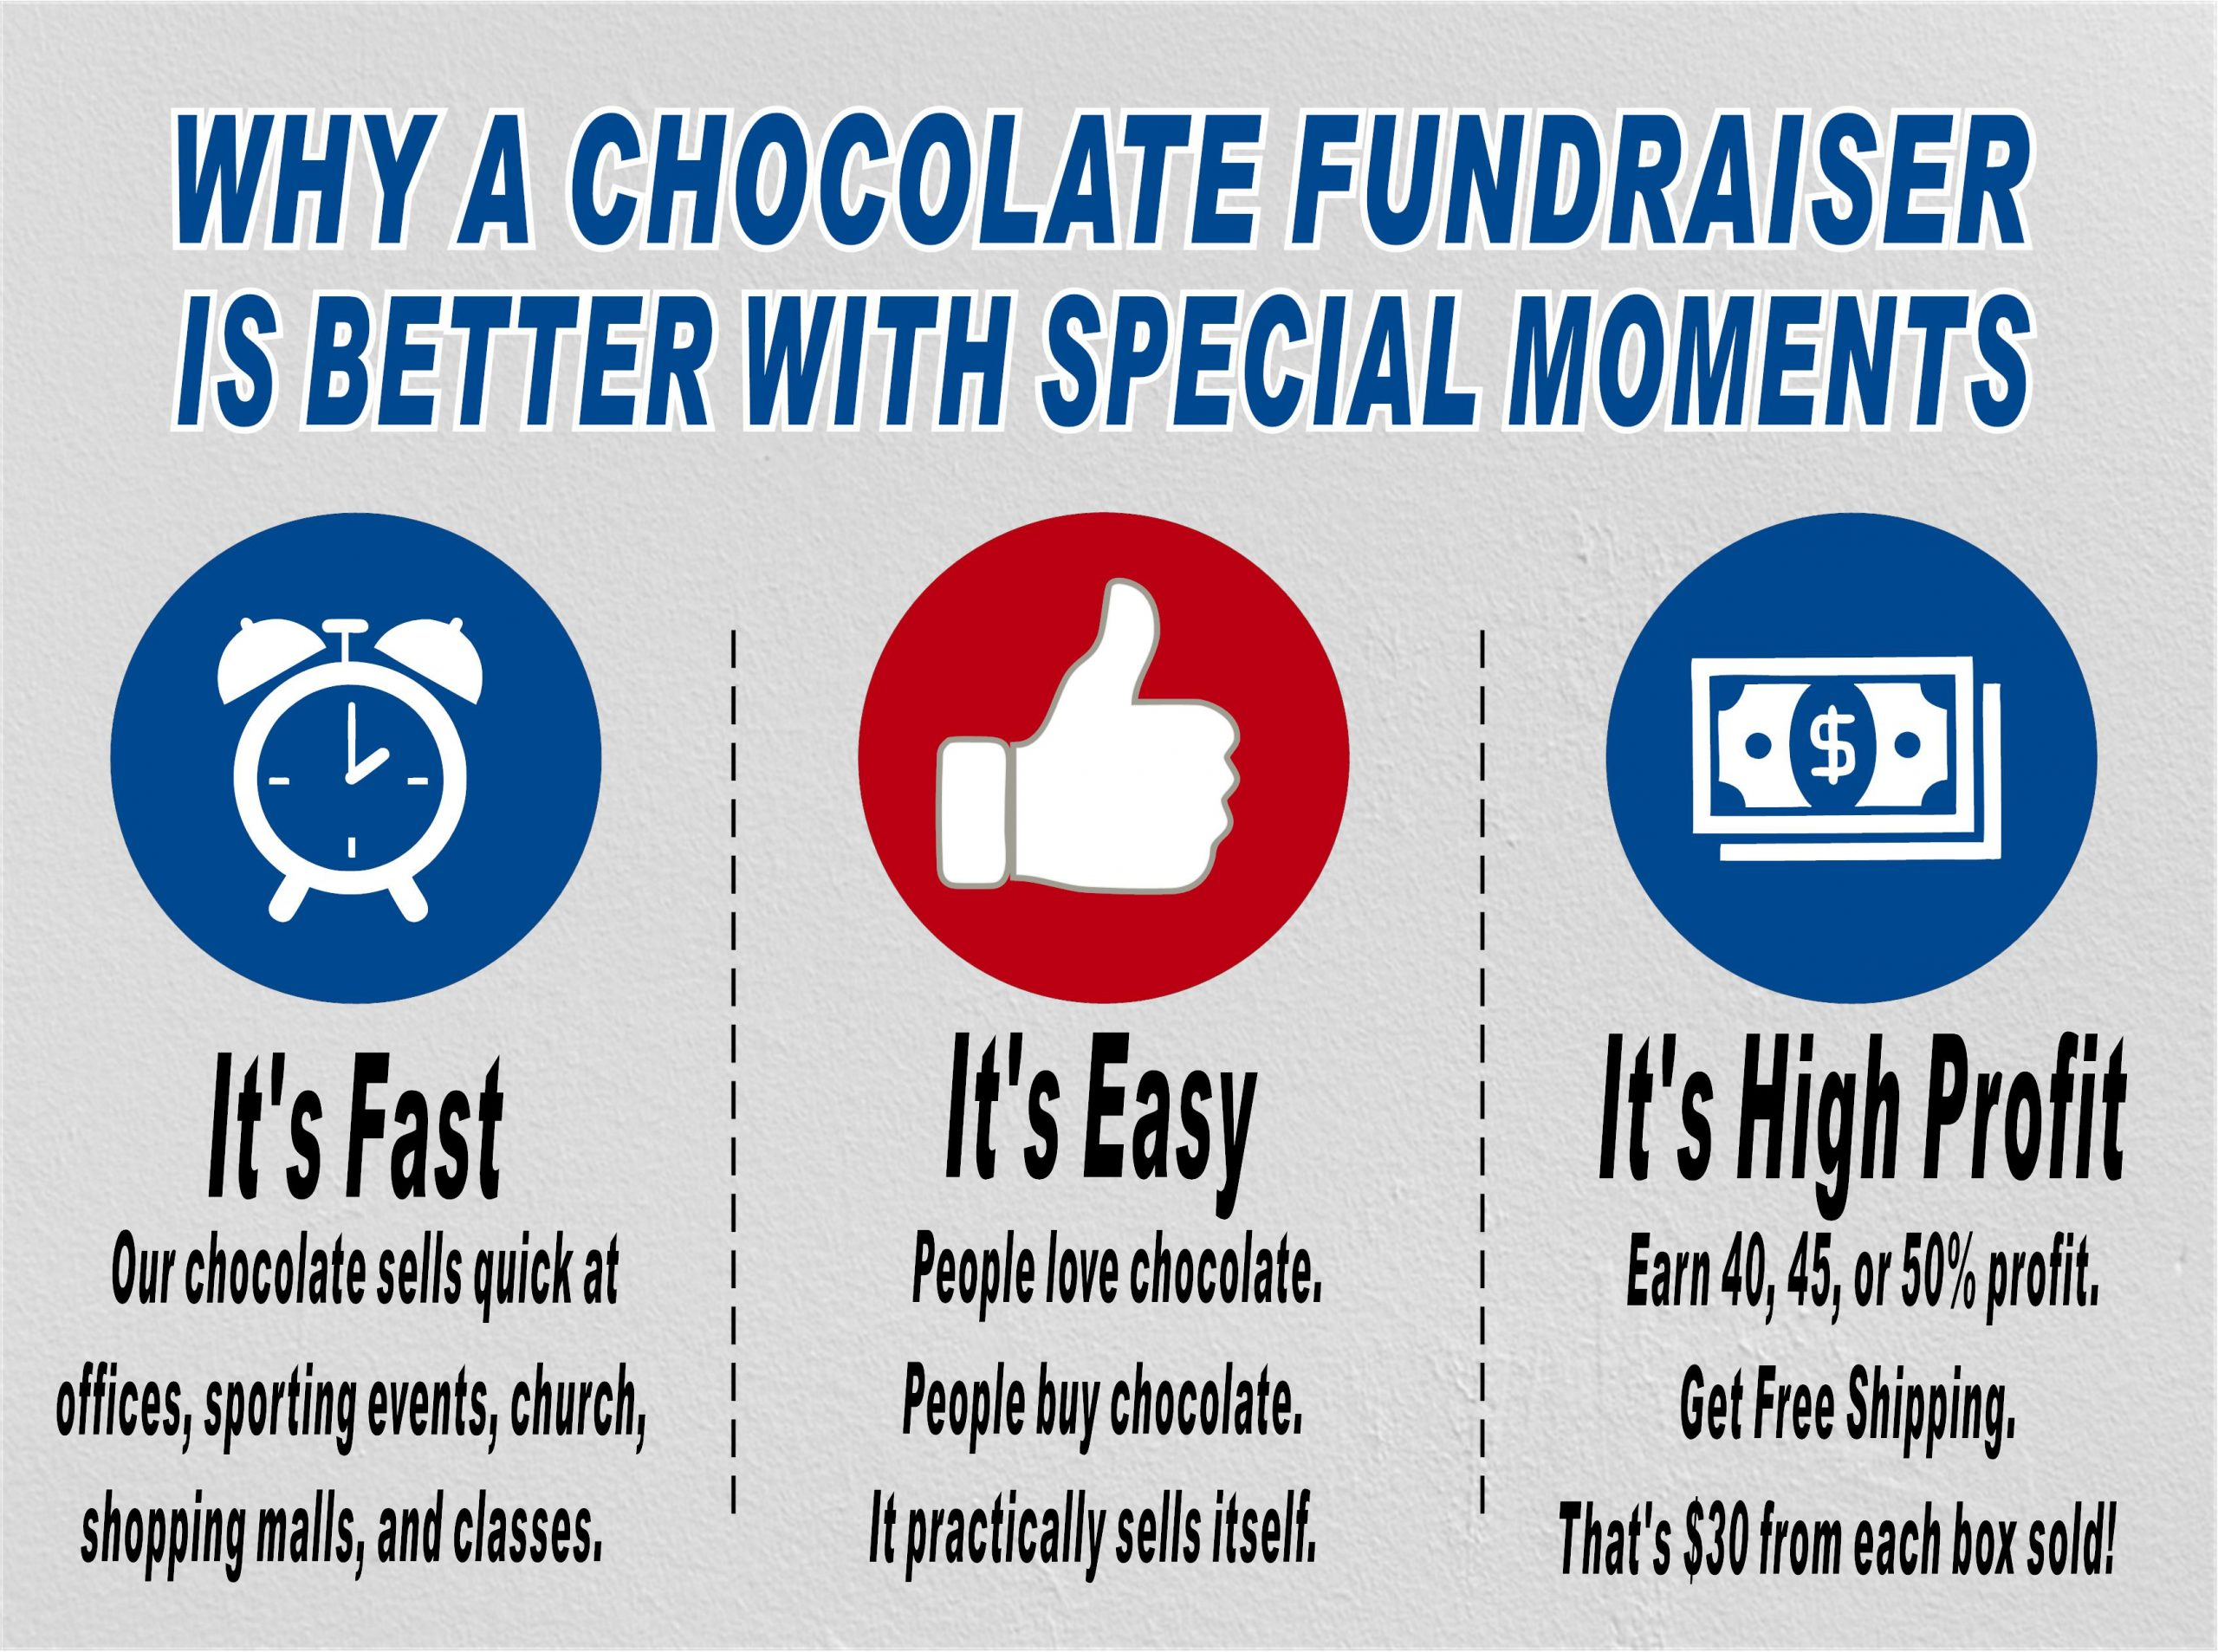 Why A Chocolate Fundraiser Is Better With Special Moments